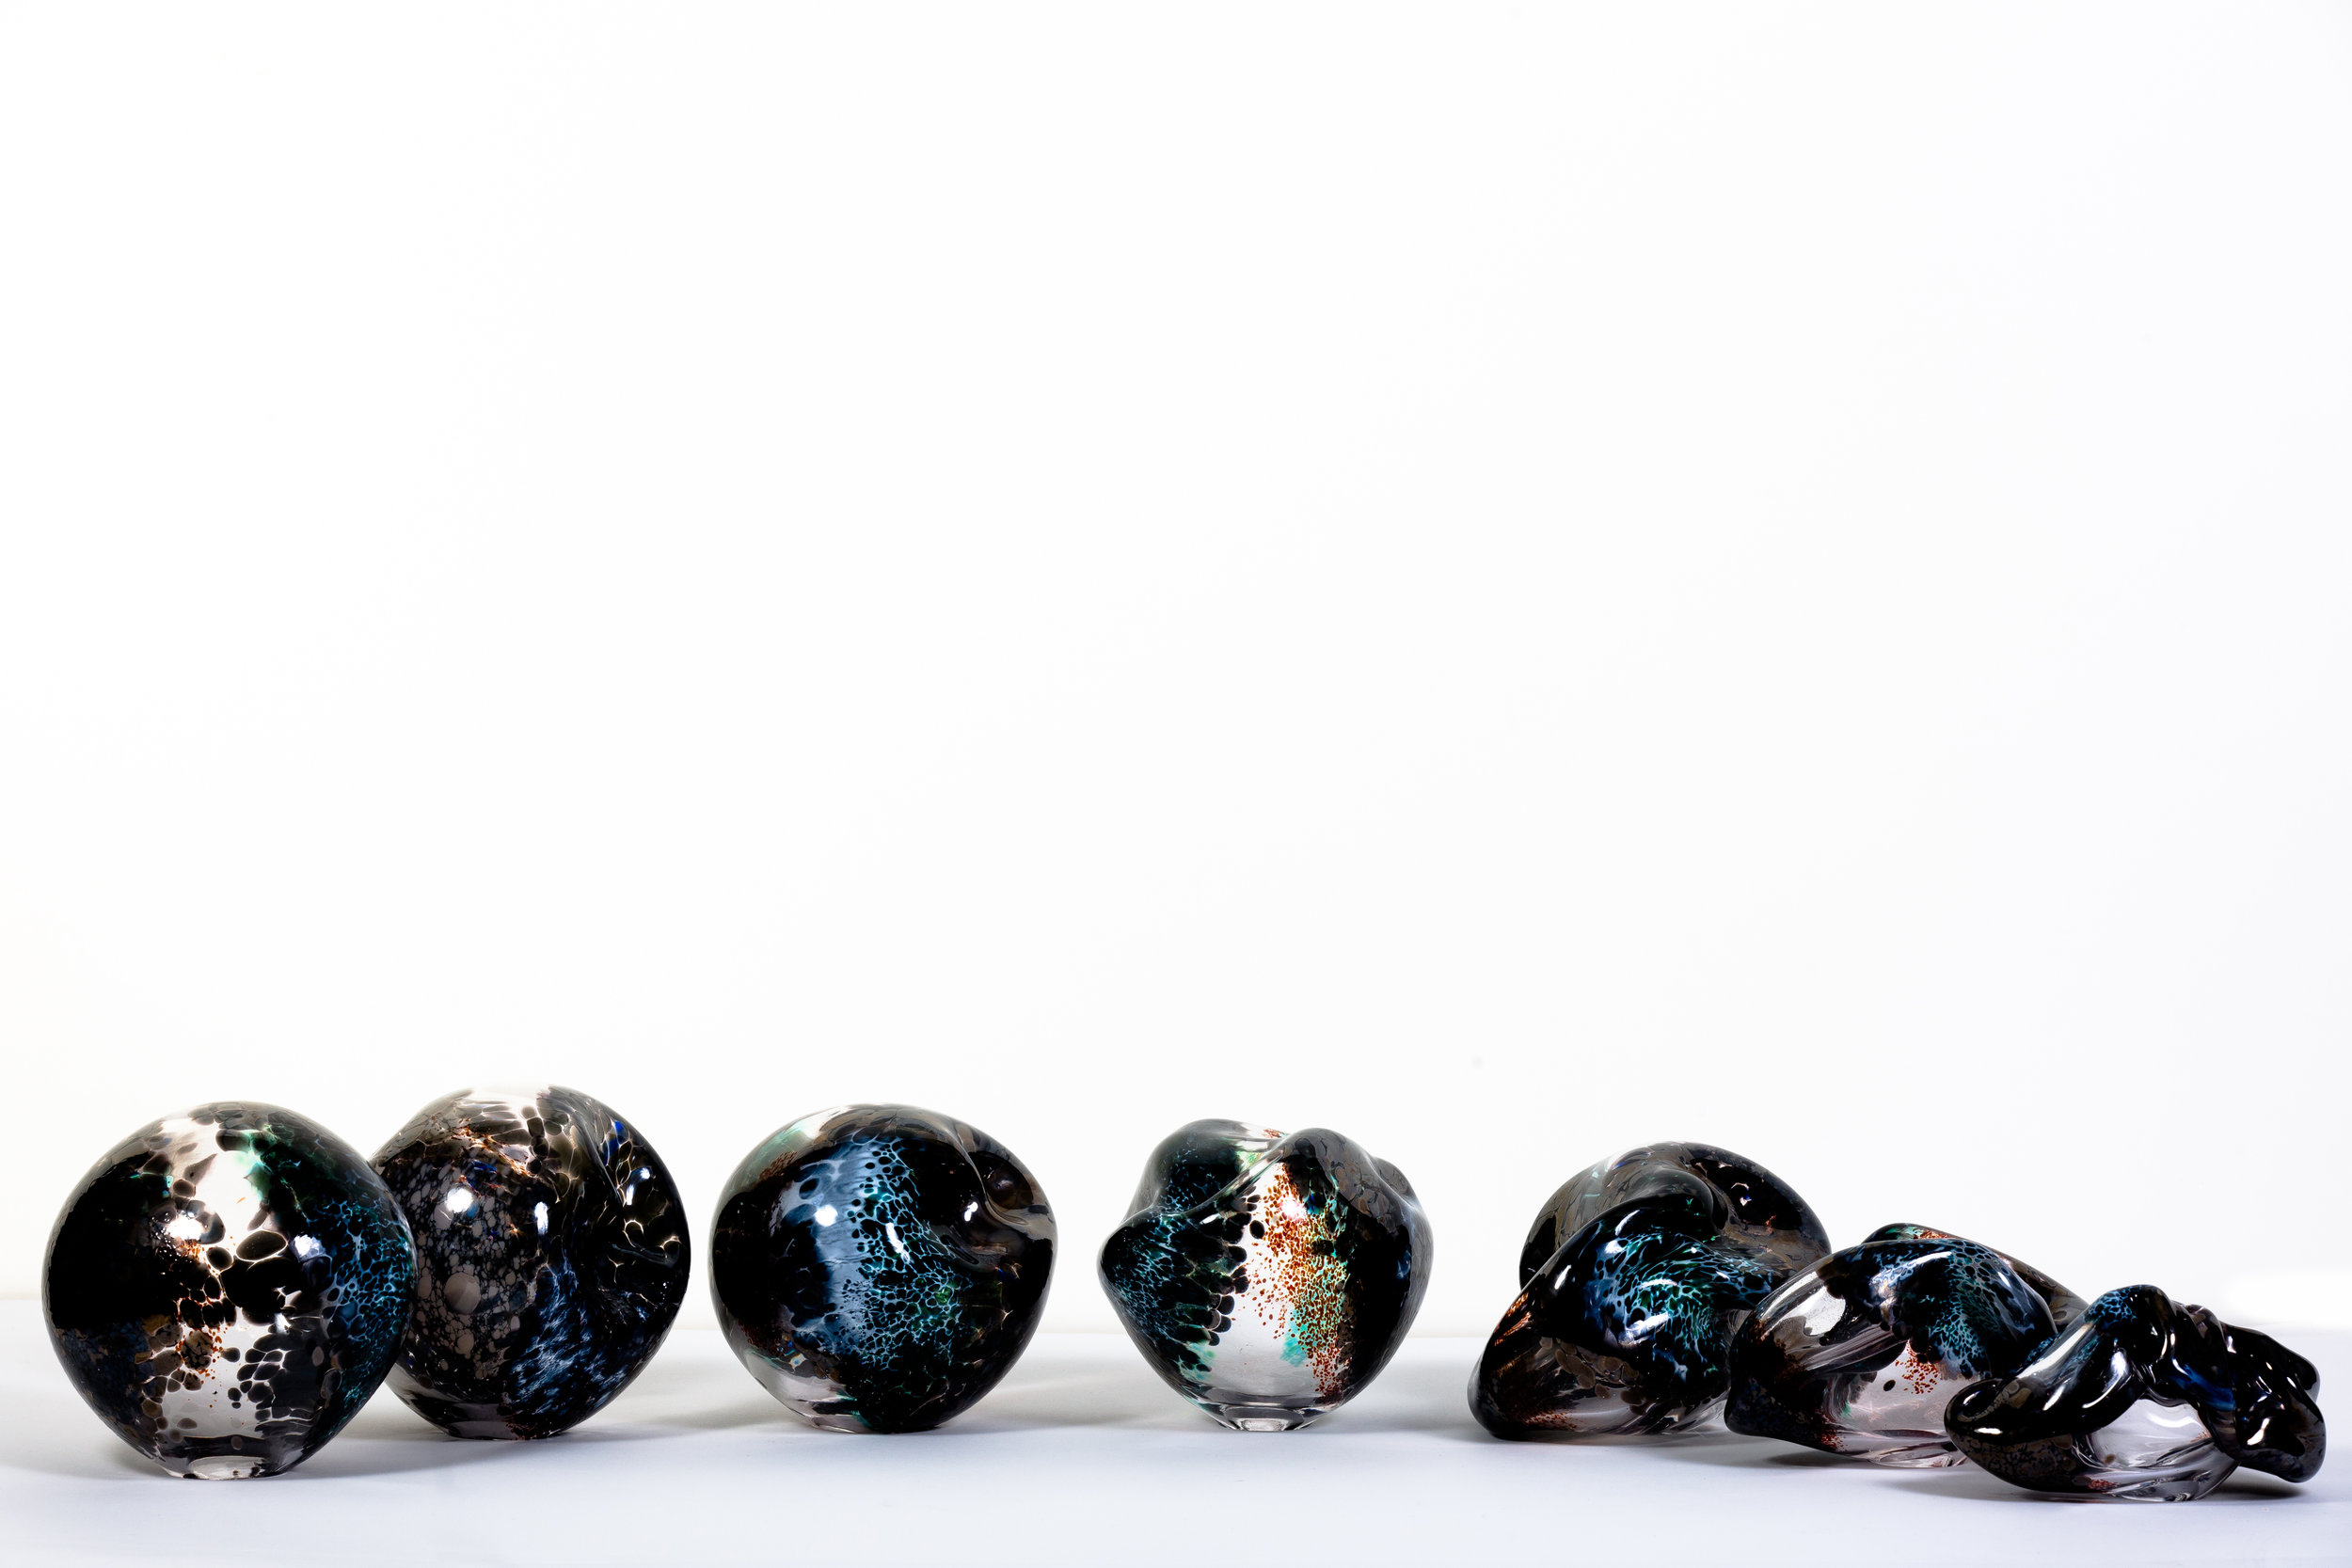 49c_Gillian - sequential distortions - glass and nitrates.jpg